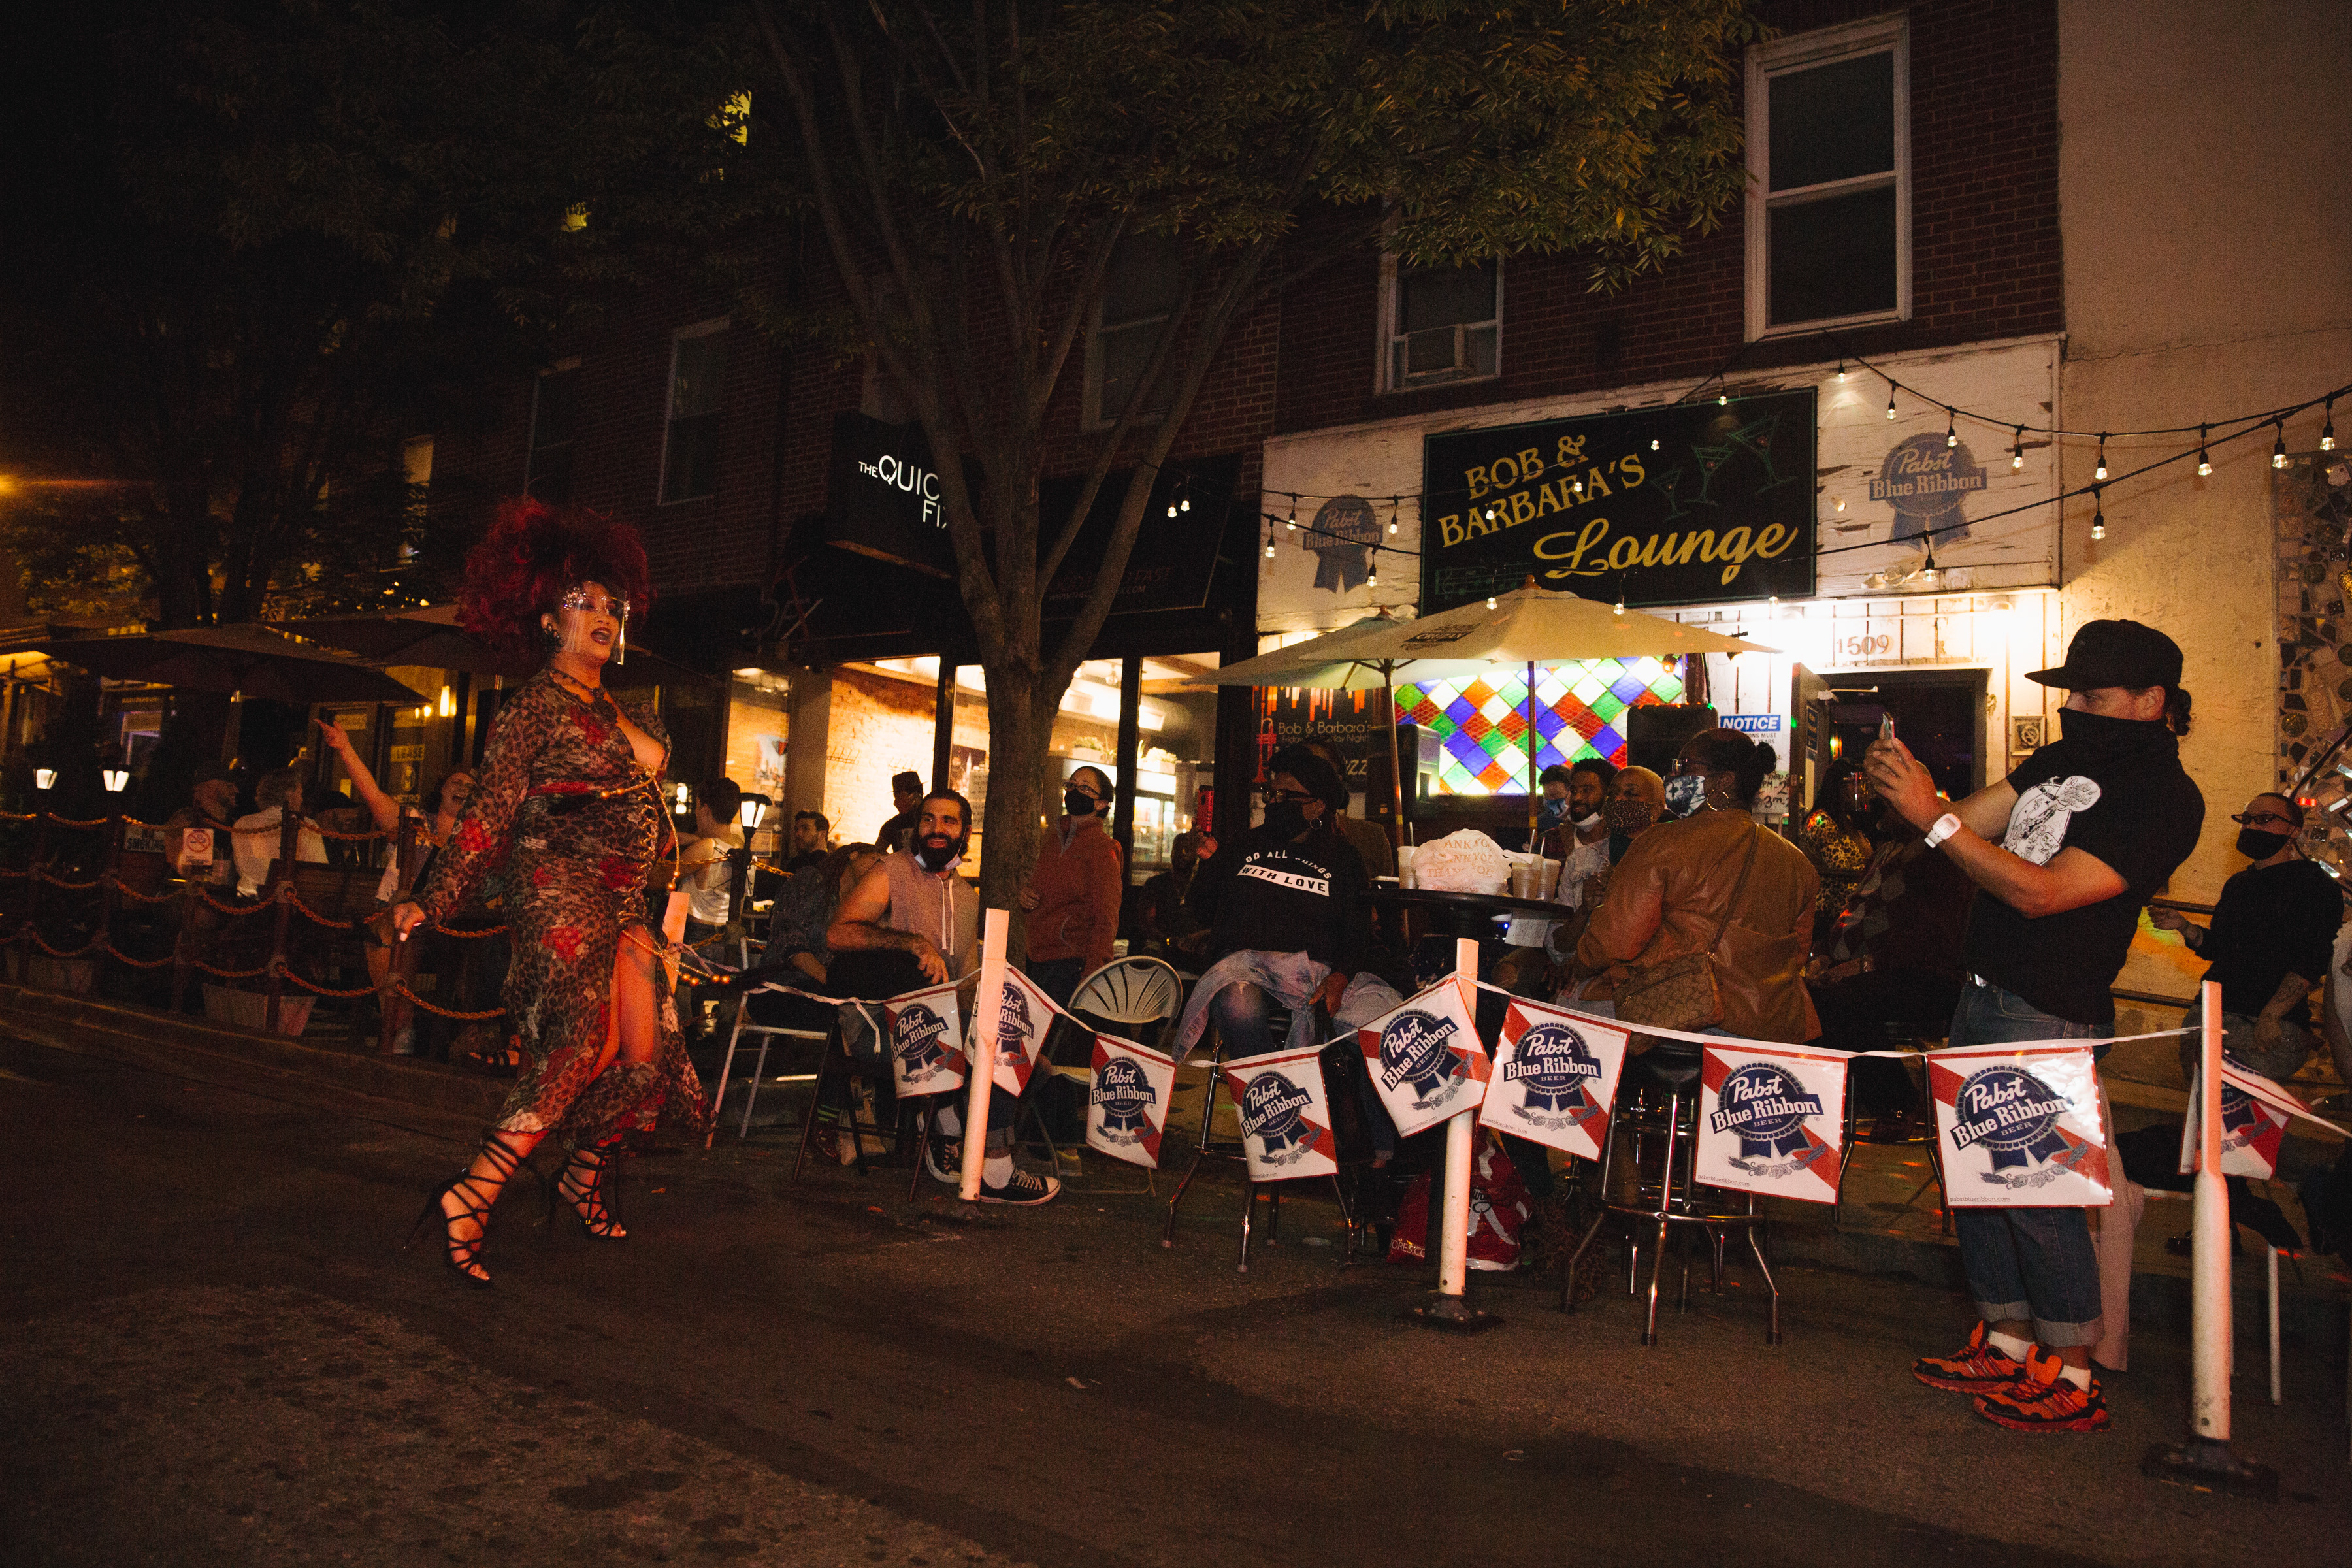 outside of dive bar with posts around tables holding pbr beer signs, a drag performer in the street, and a bar customer taking a photo